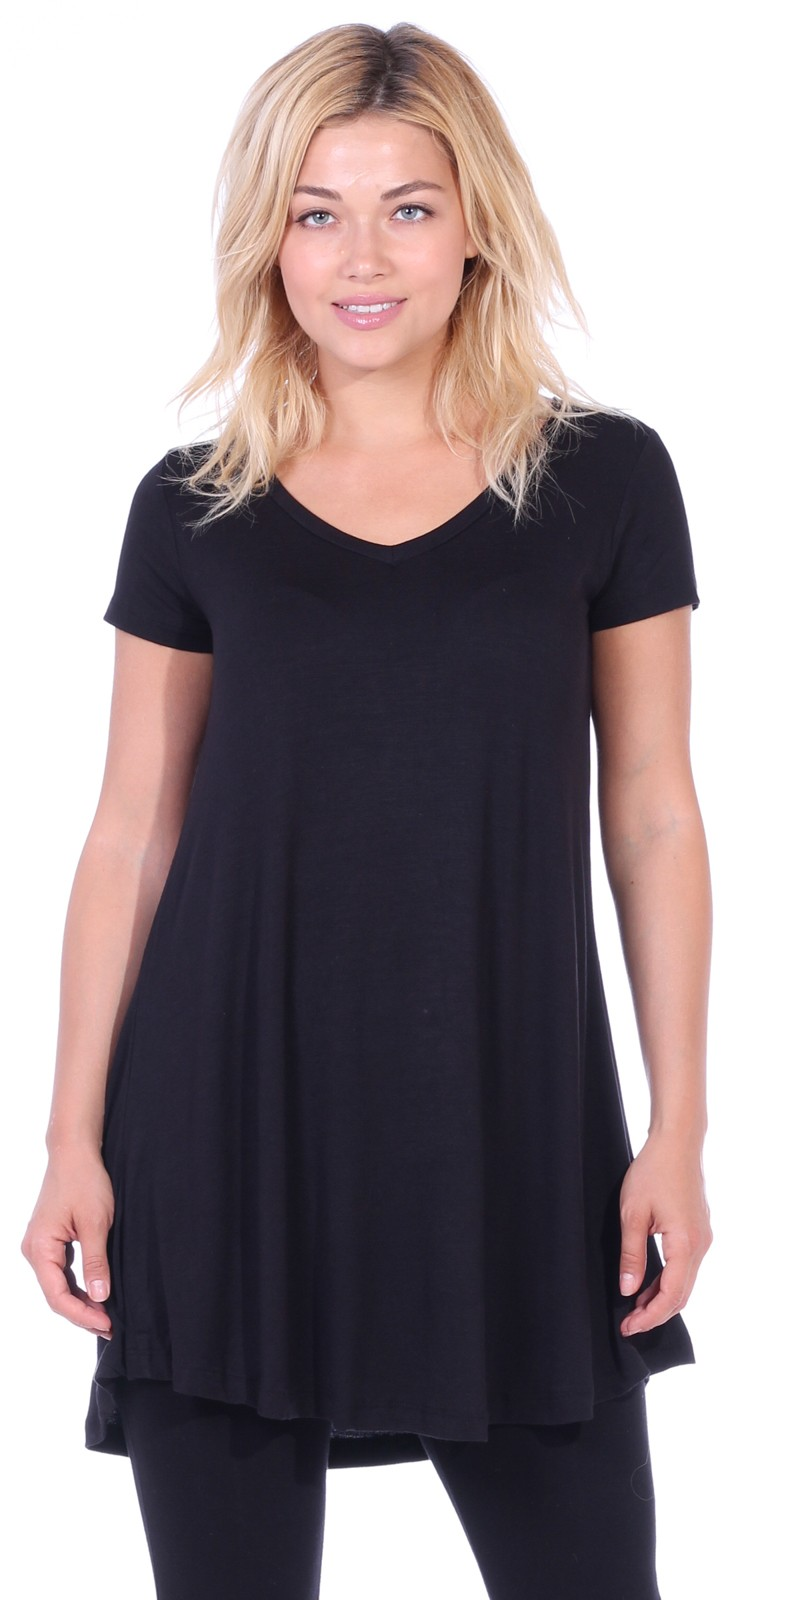 Cotton is also the perfect fabric for plus size long tunics for curvier women. Fabrics like chiffon and georgette are used to make soft, flatteringly cut long tunic tops women can wear when they want to look attractive in an elegant, understated manner.